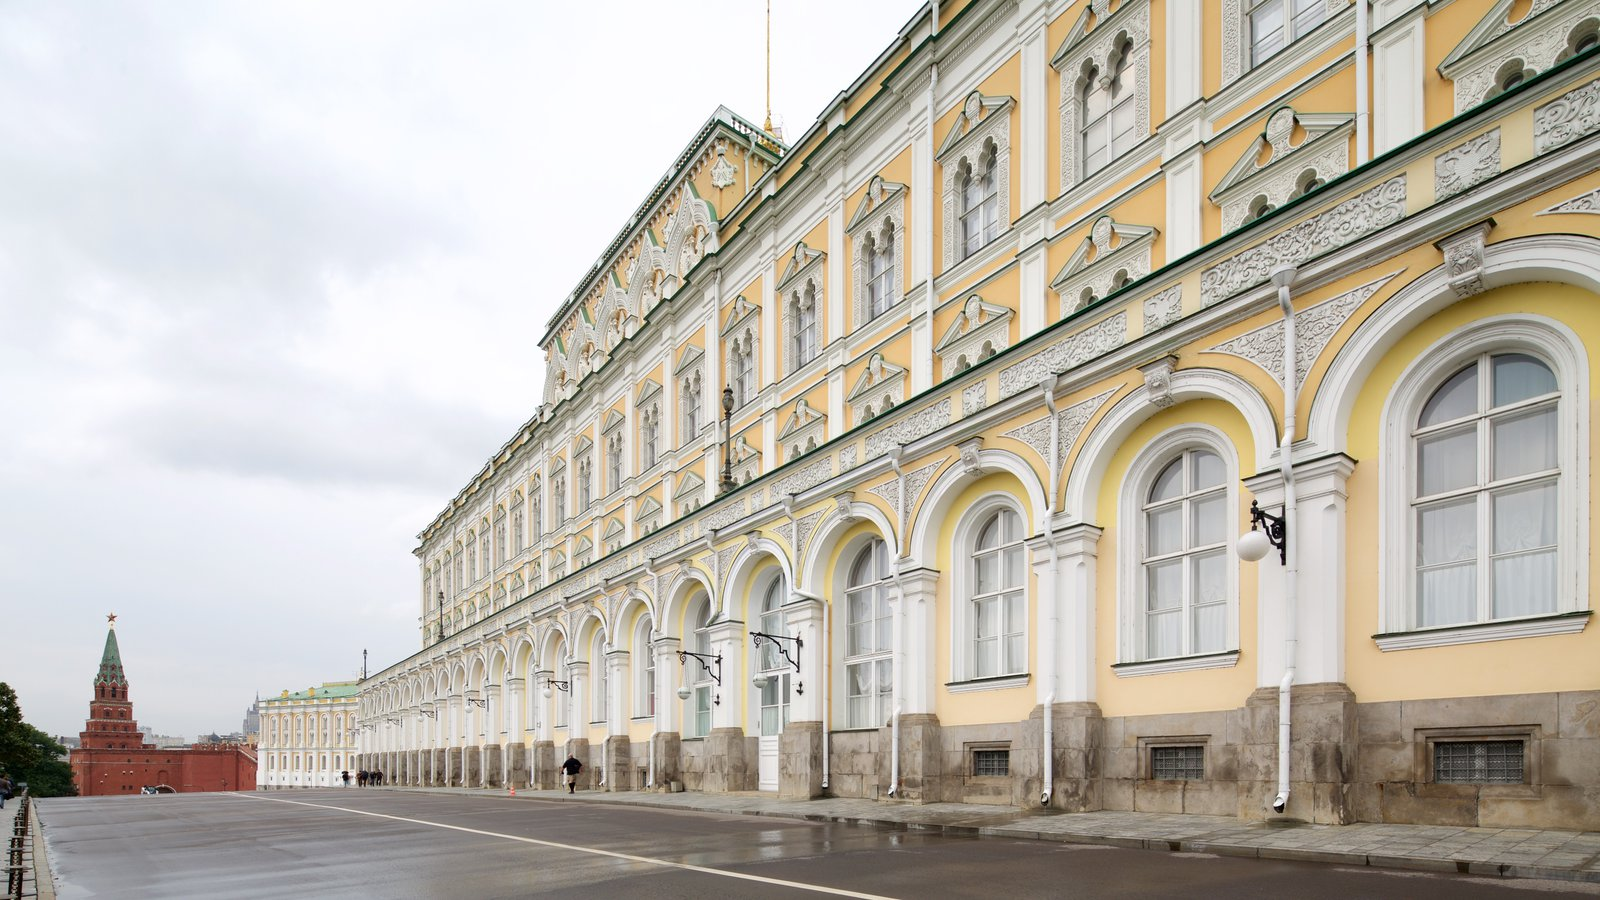 Kremlin Armoury Museum featuring heritage architecture